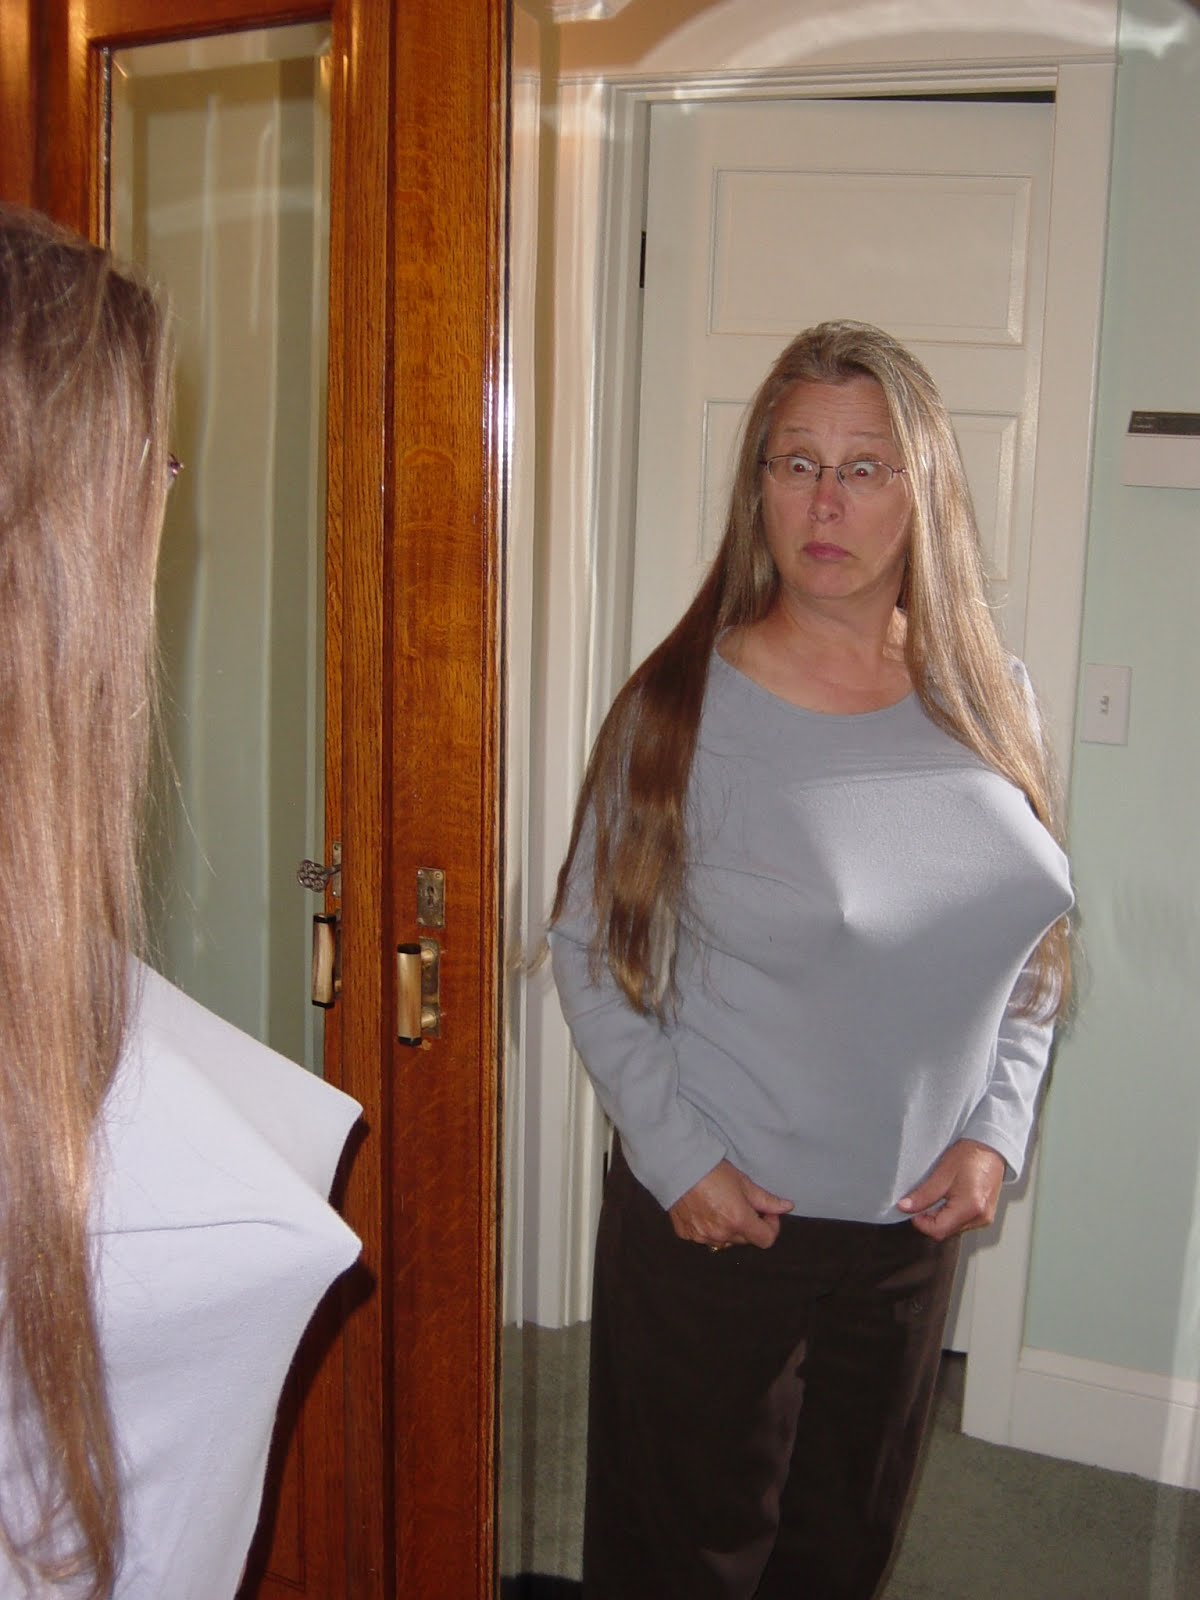 Young women with saggy breasts